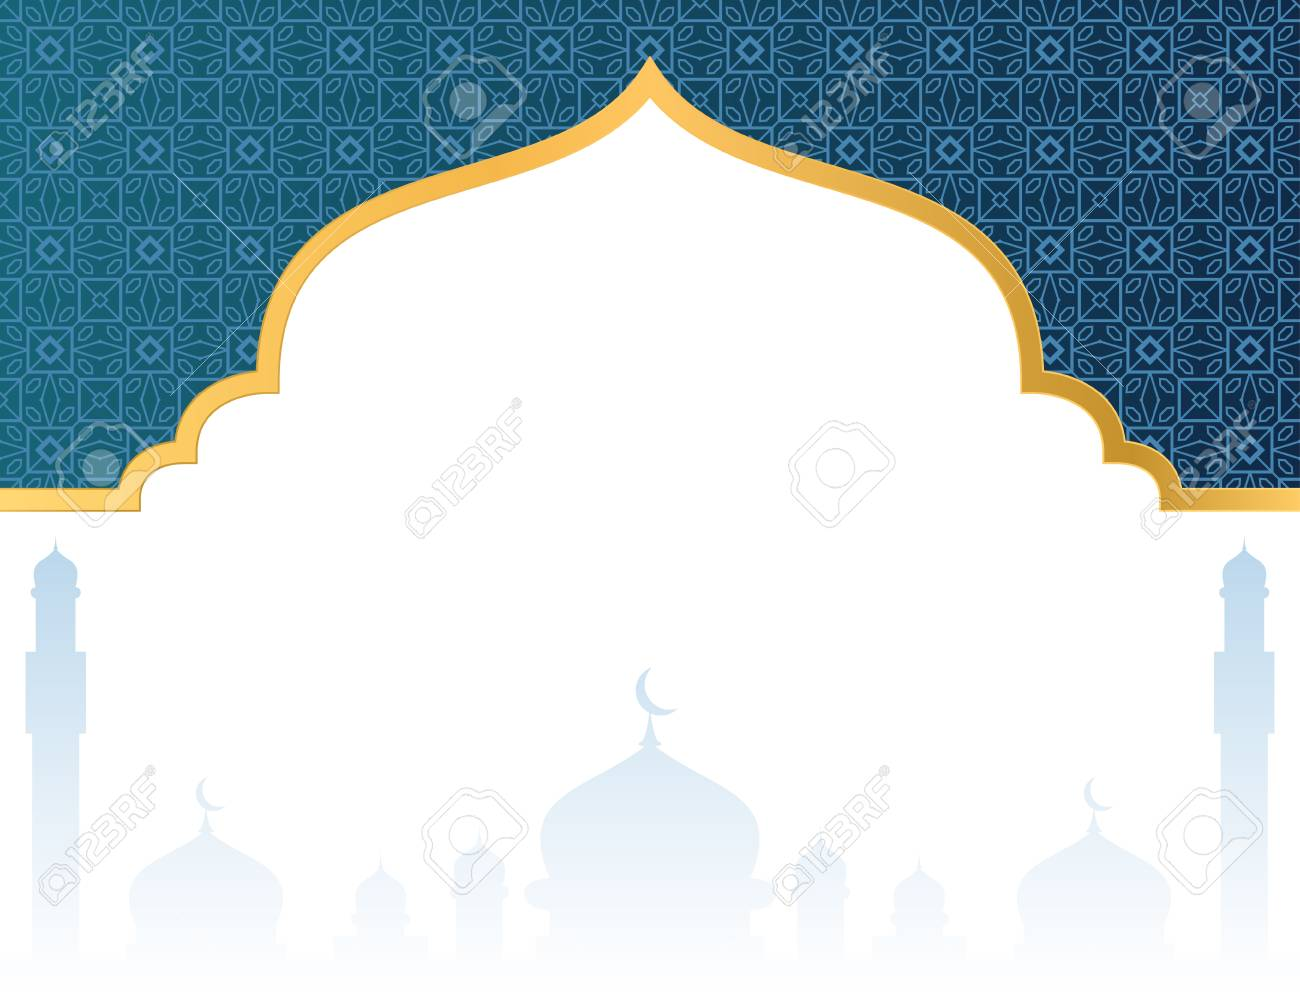 blank islamic background with